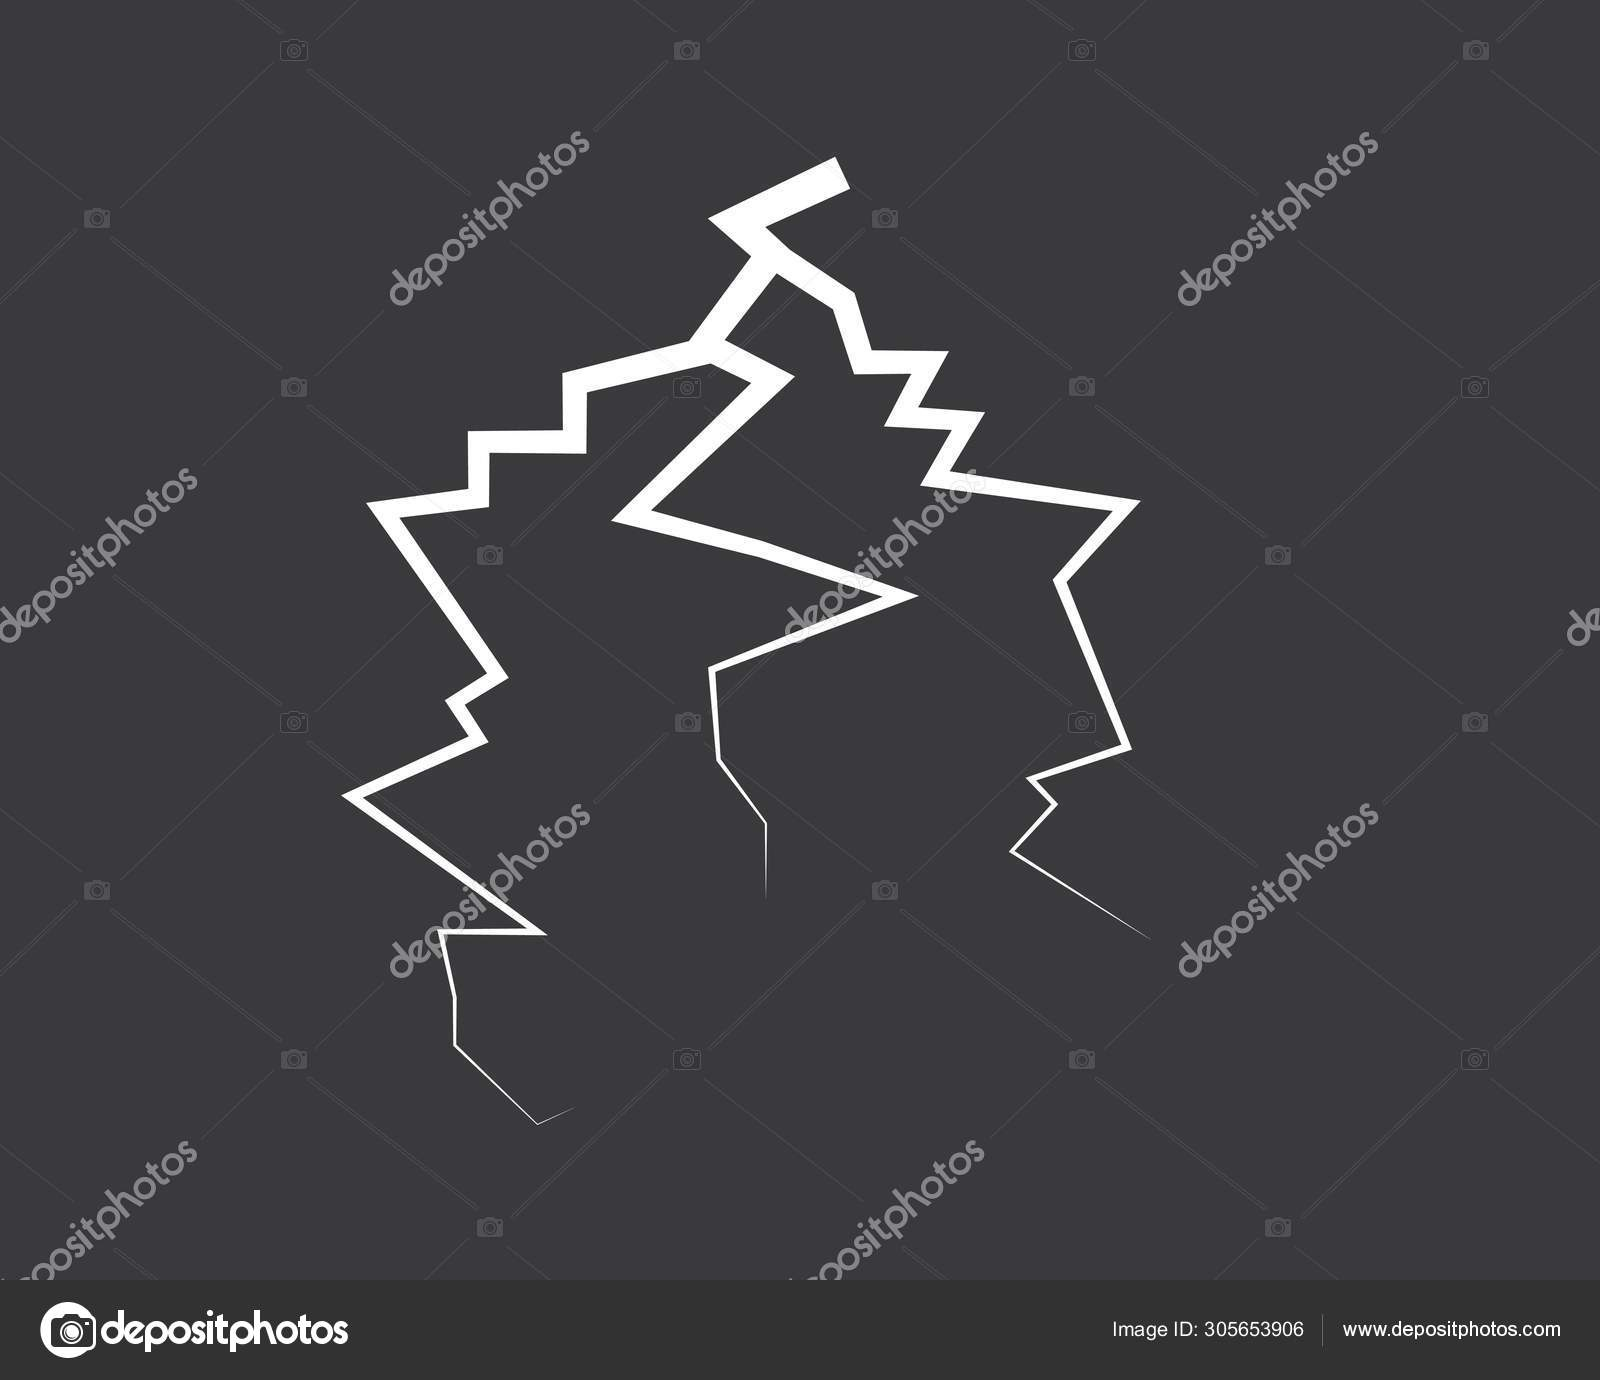 thunder vector icon illustration stock vector c sangidan 305653906 thunder vector icon illustration stock vector c sangidan 305653906